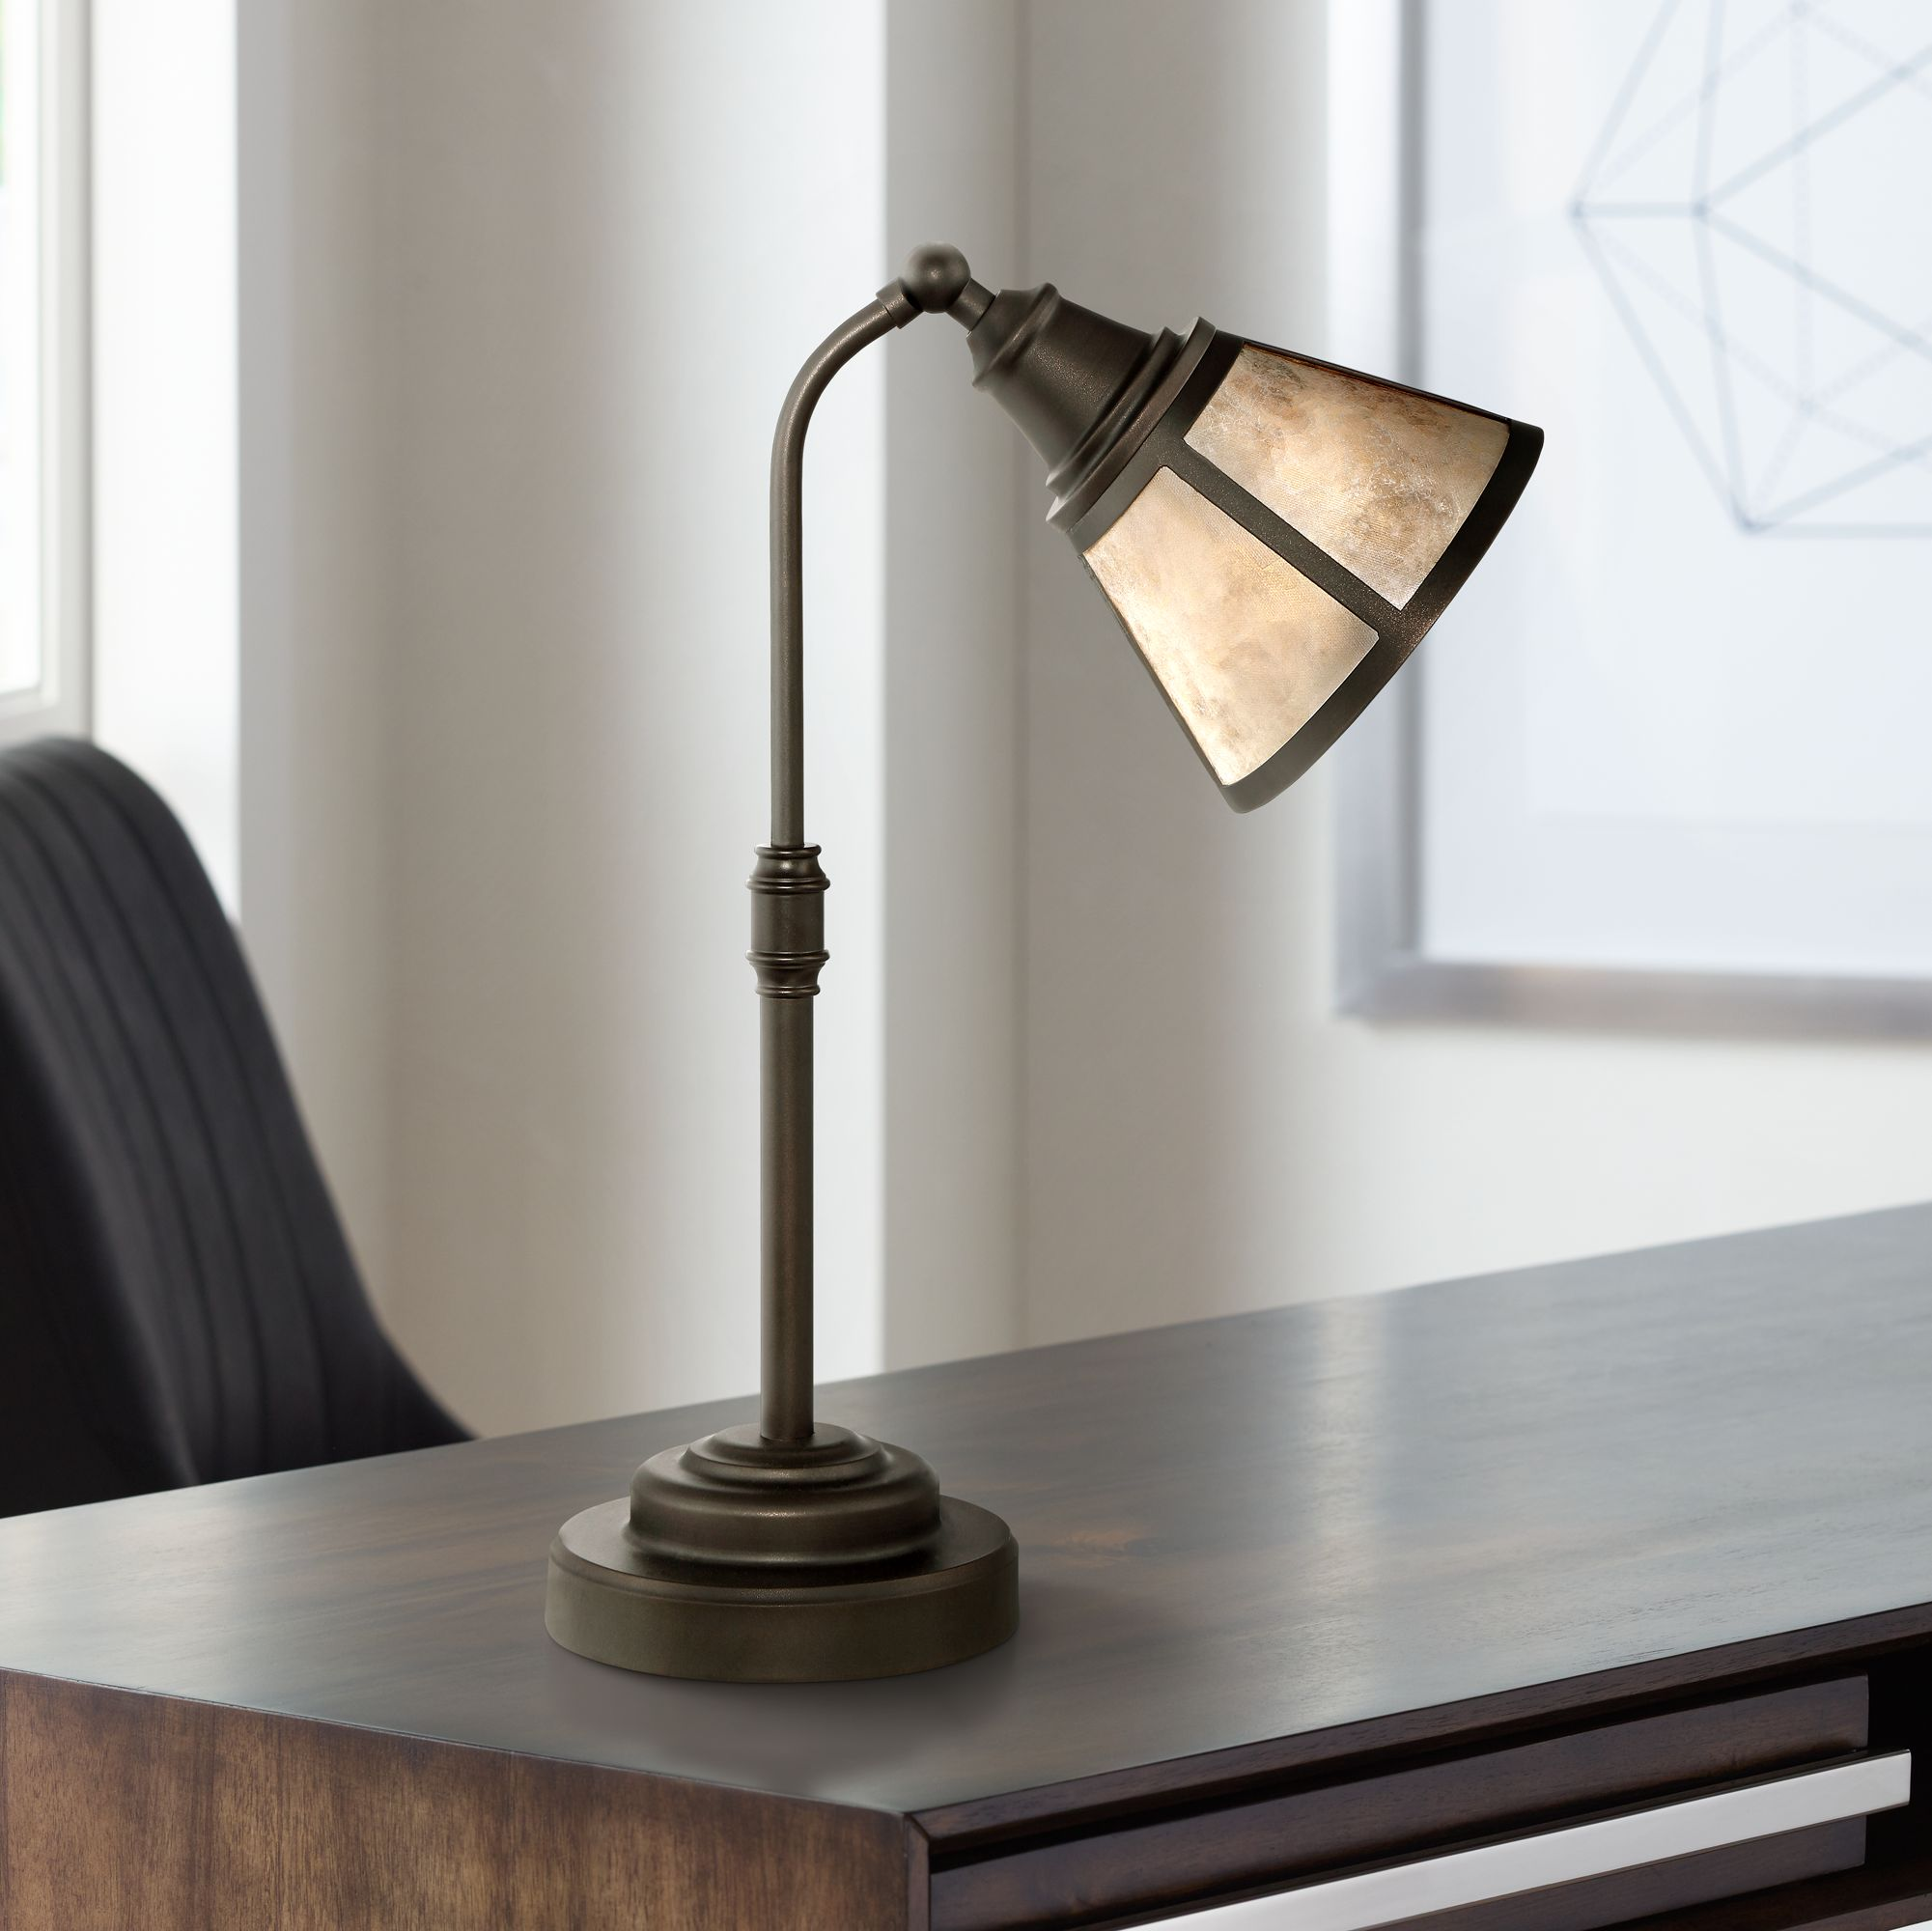 traditional desk lamps lamps plus rh lampsplus com bronze desk lamp with outlet antique bronze desk lamp